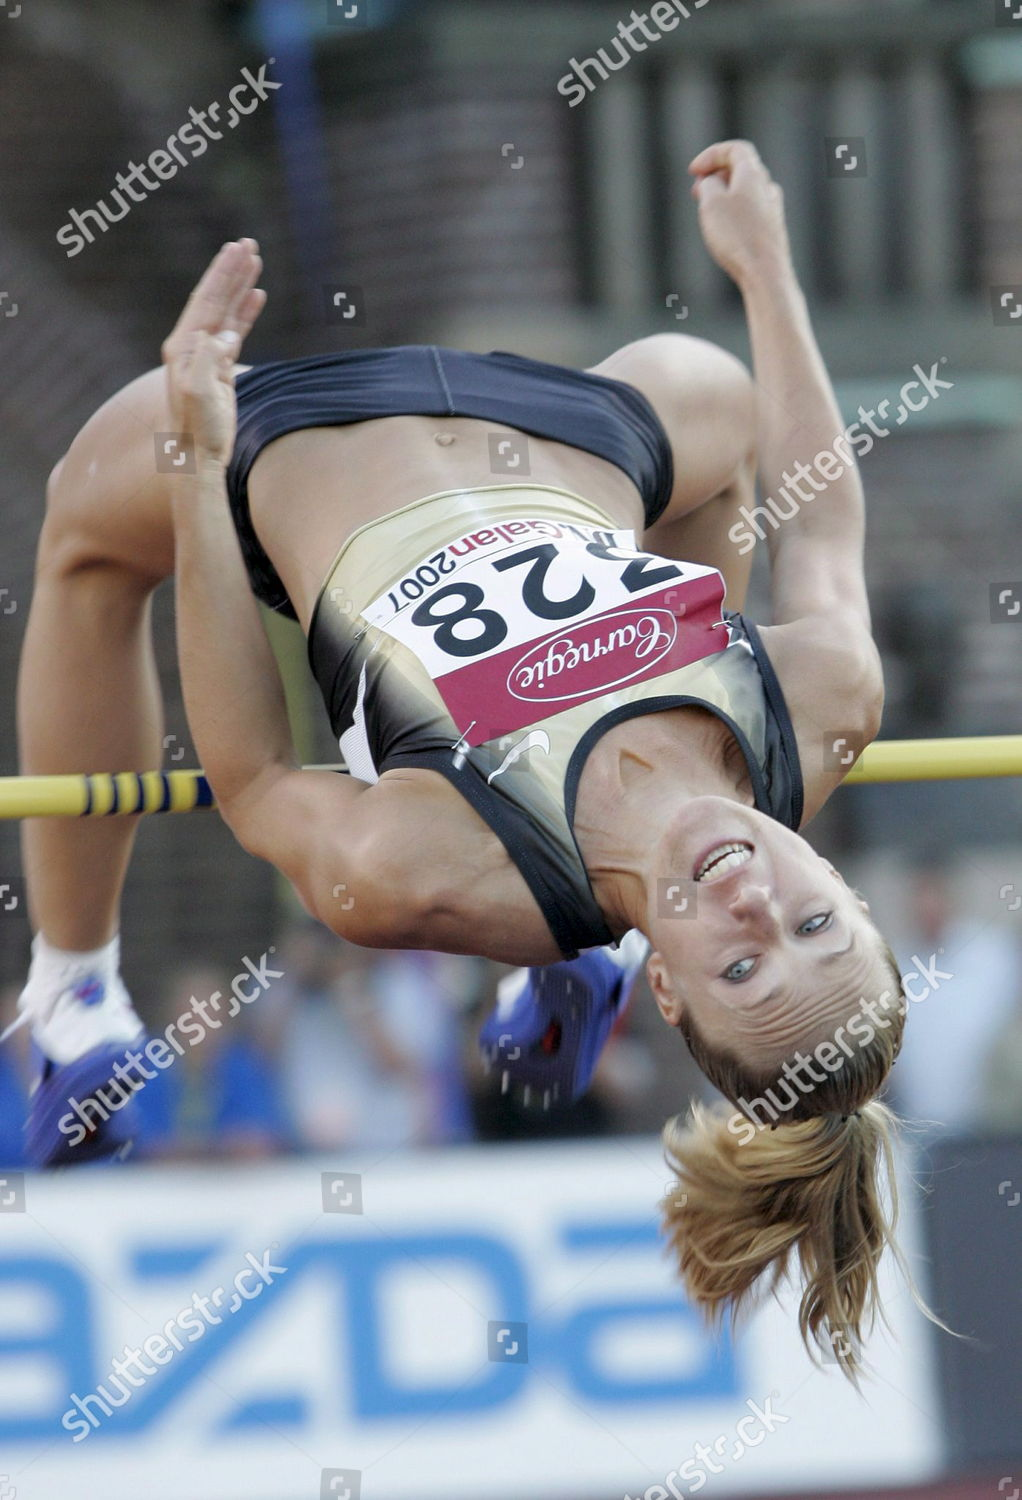 Discussion on this topic: Bob Hope (1903?003 (naturalized American citizen), kajsa-bergqvist-high-jumping/